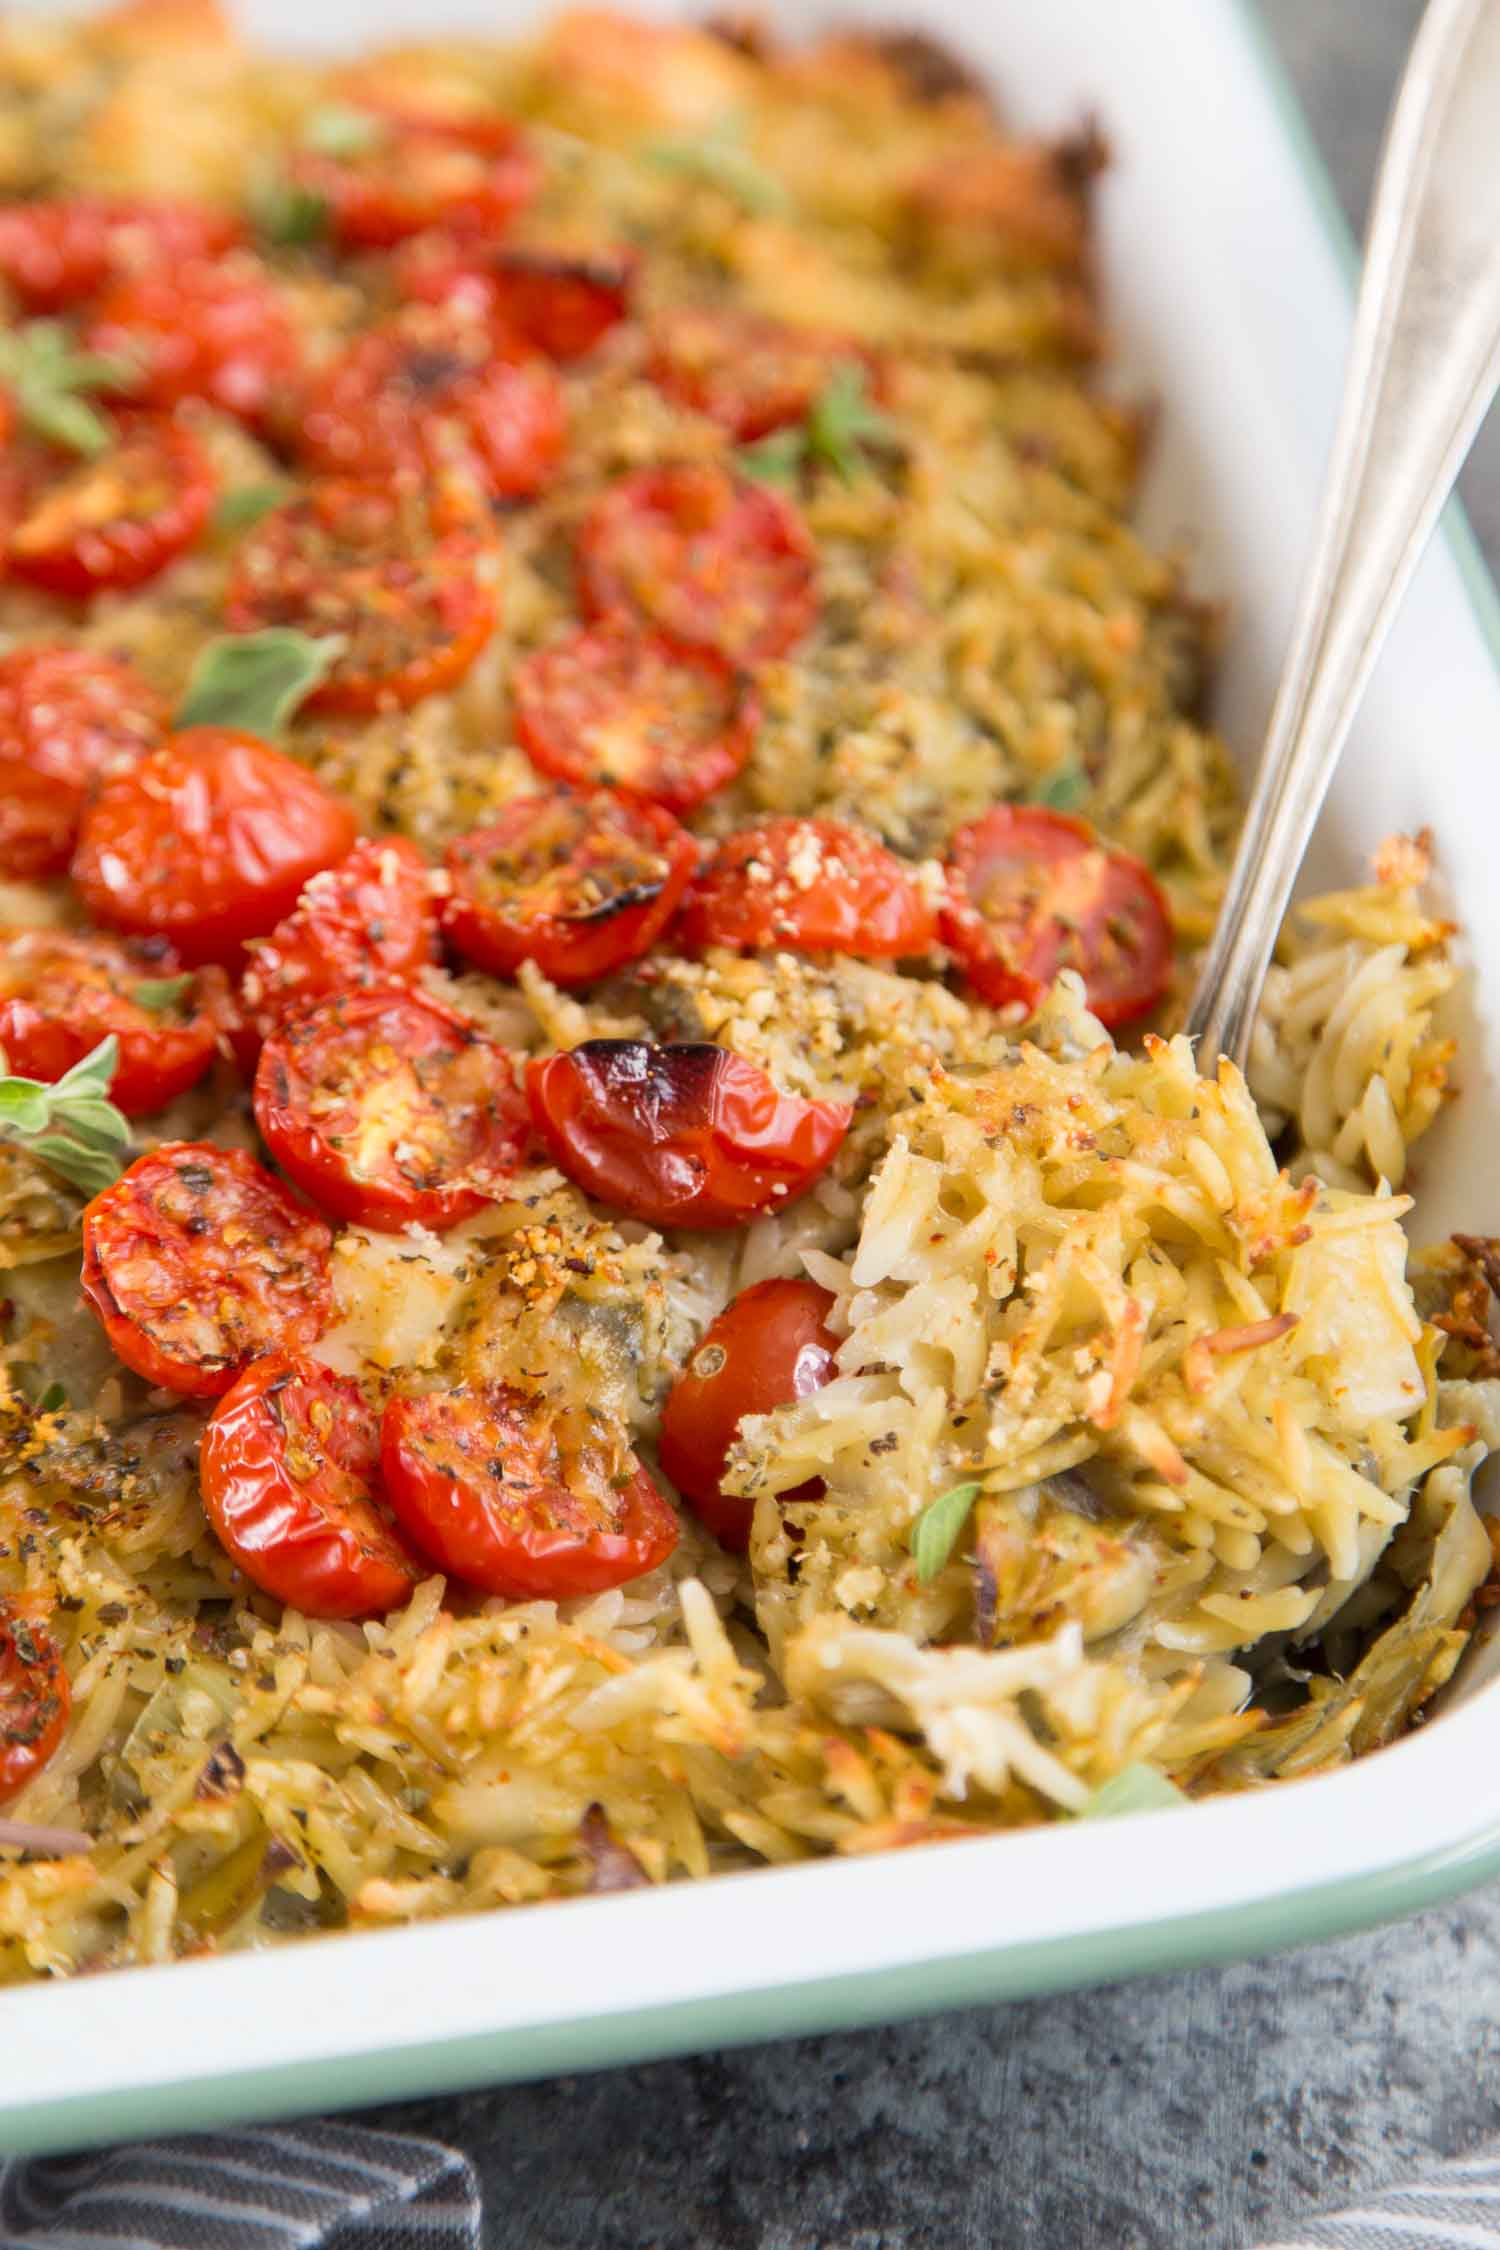 Baked Orzo with Artichokes, Tomatoes, and Halloumi